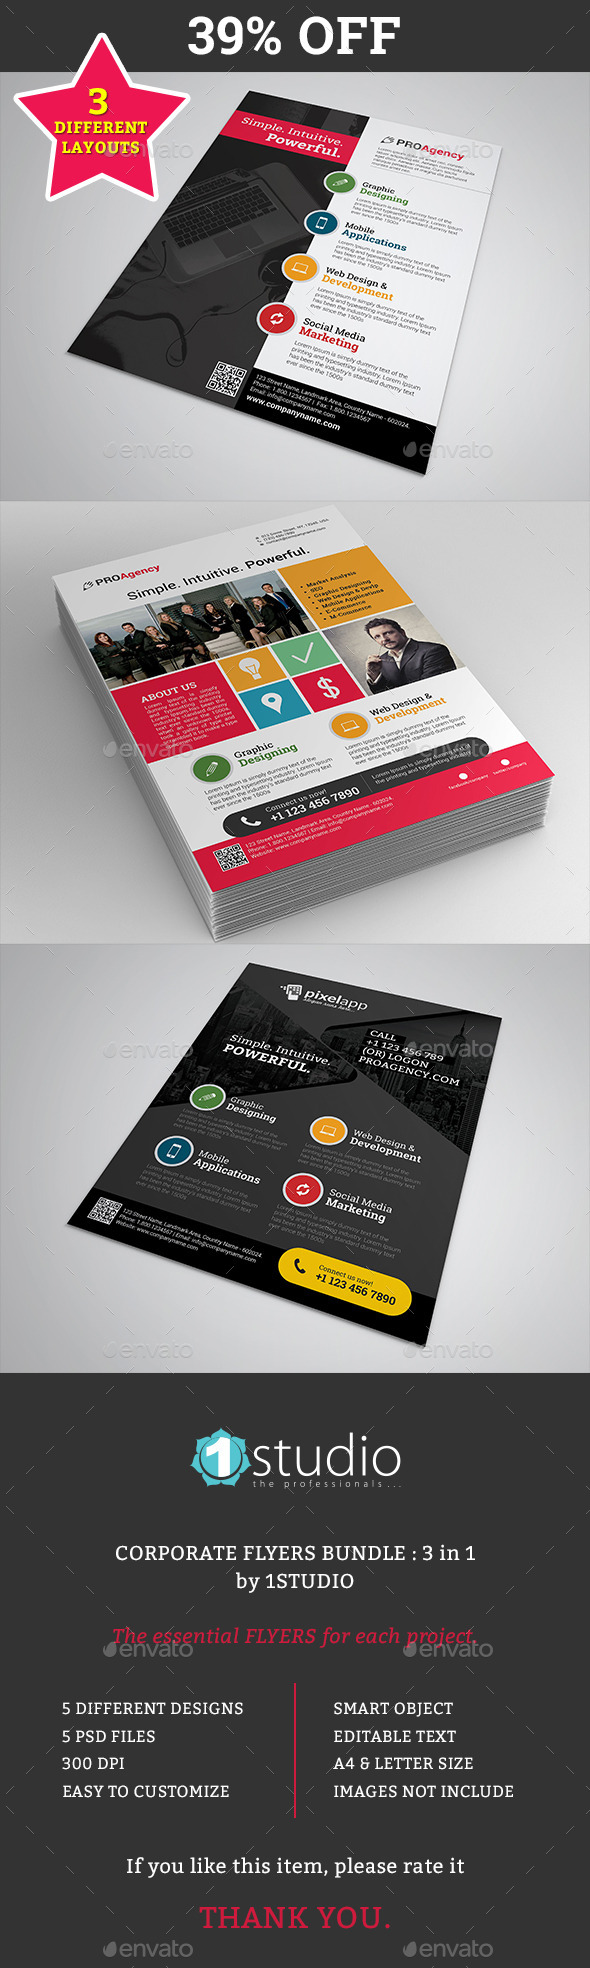 Flyers Bundle 02 - 3 in 1 - Corporate Flyers